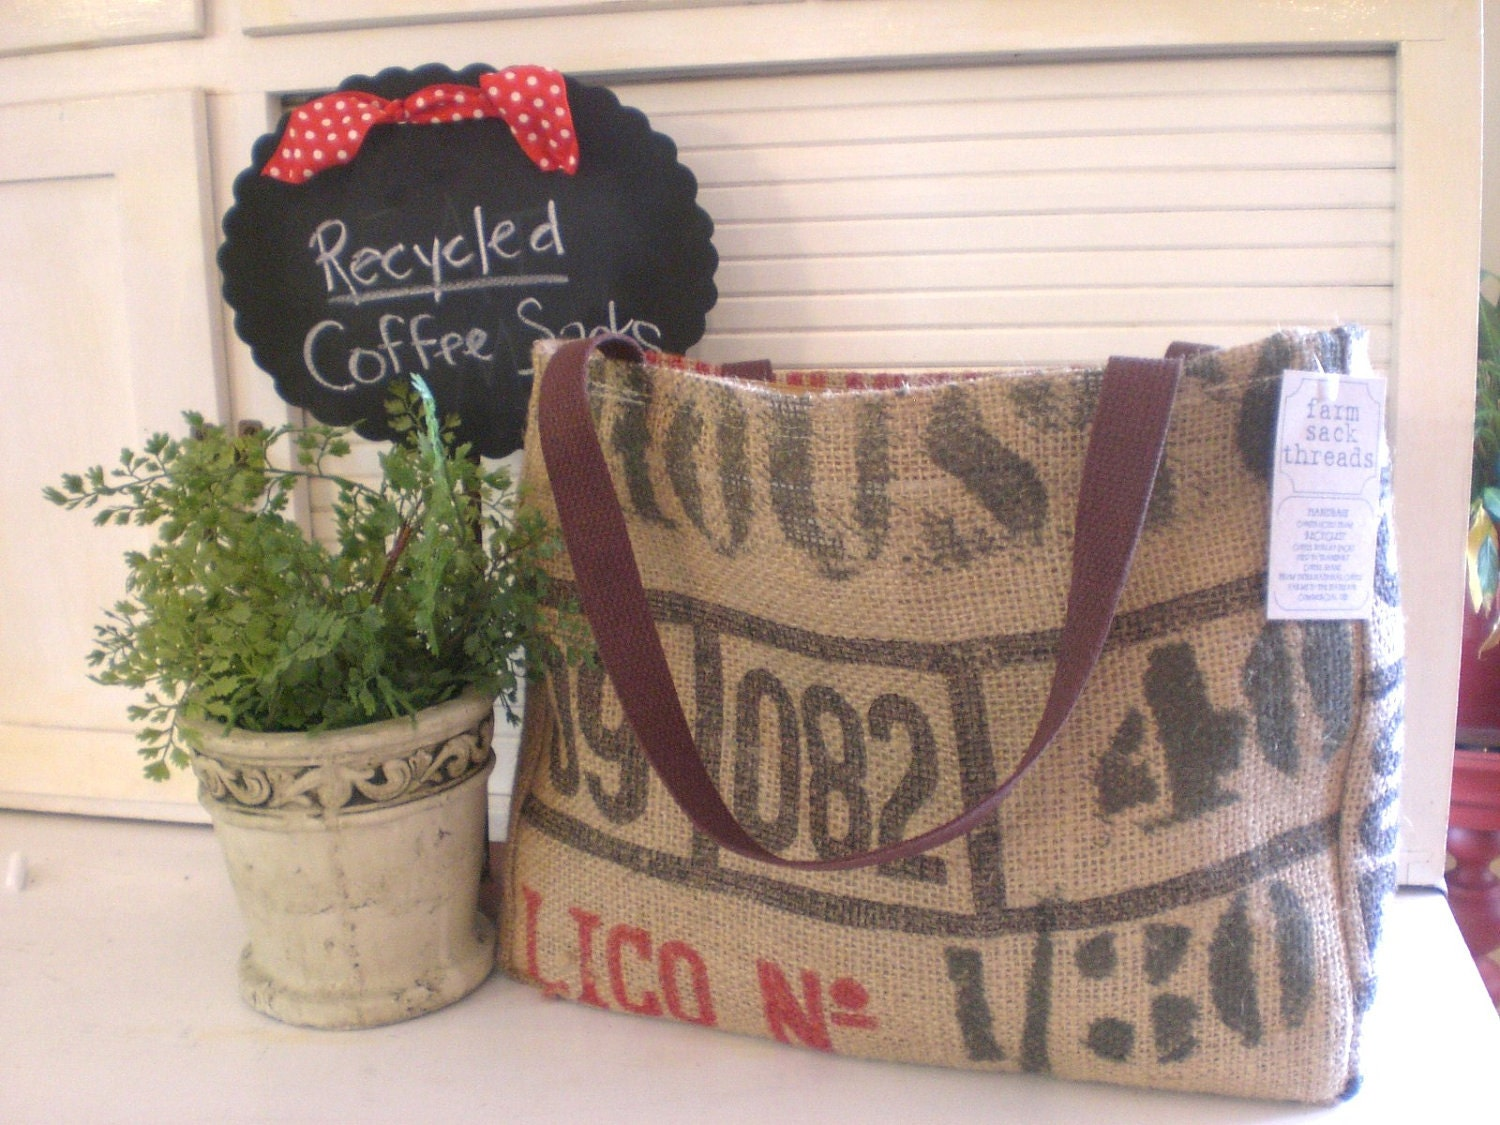 Burlap tote created from RECYCLED Coffee Bean sack